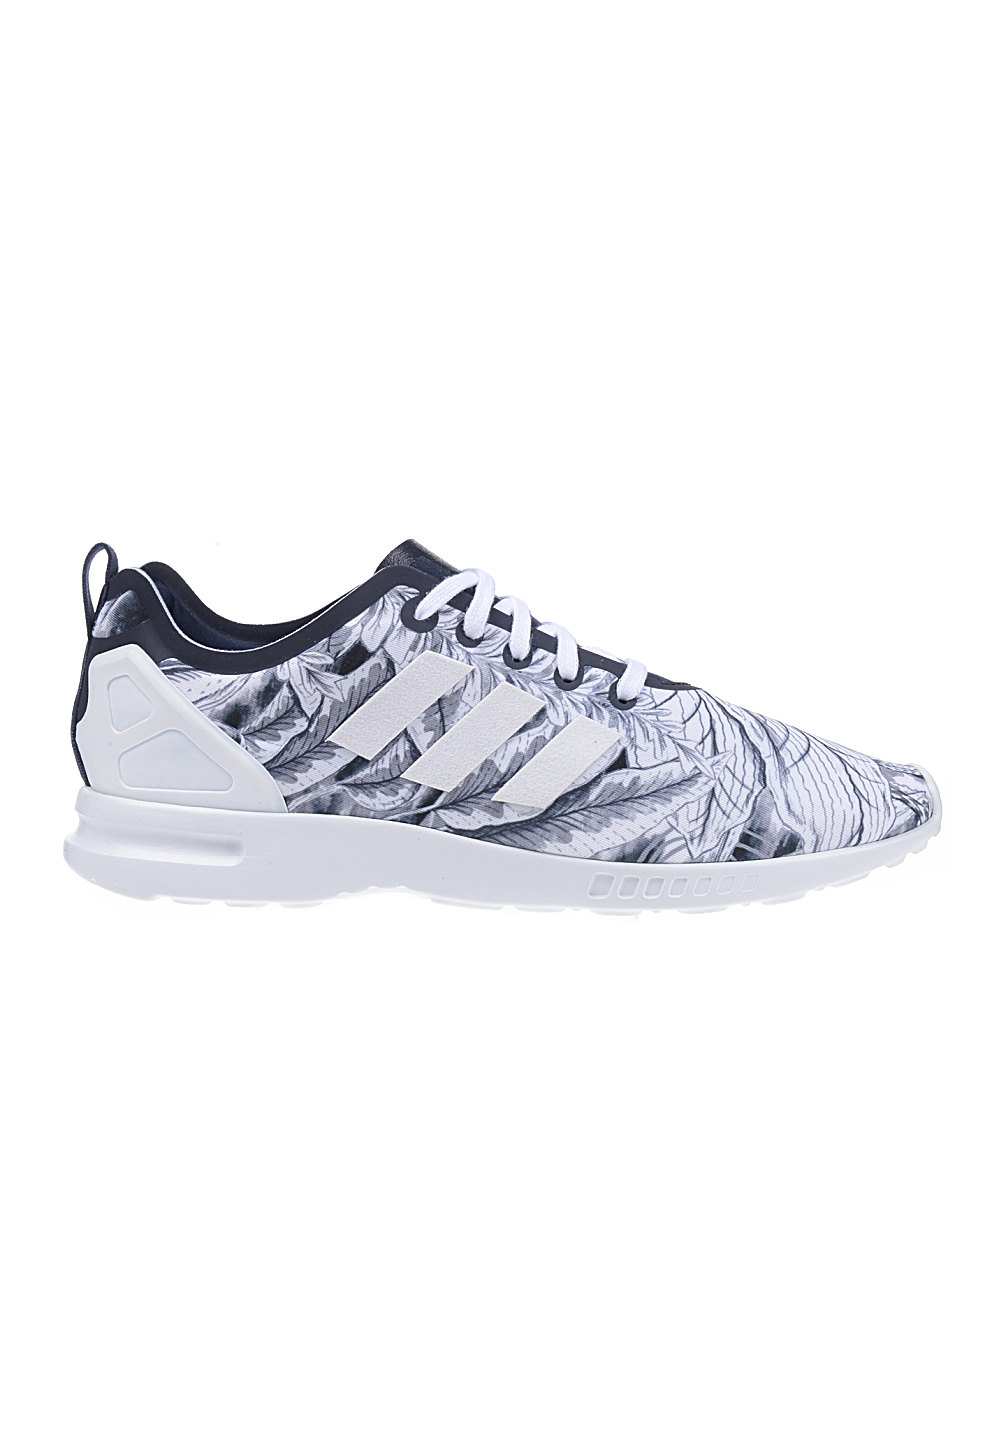 Cheap Adidas ZX Flux Smooth Shoes Sale Online 2017